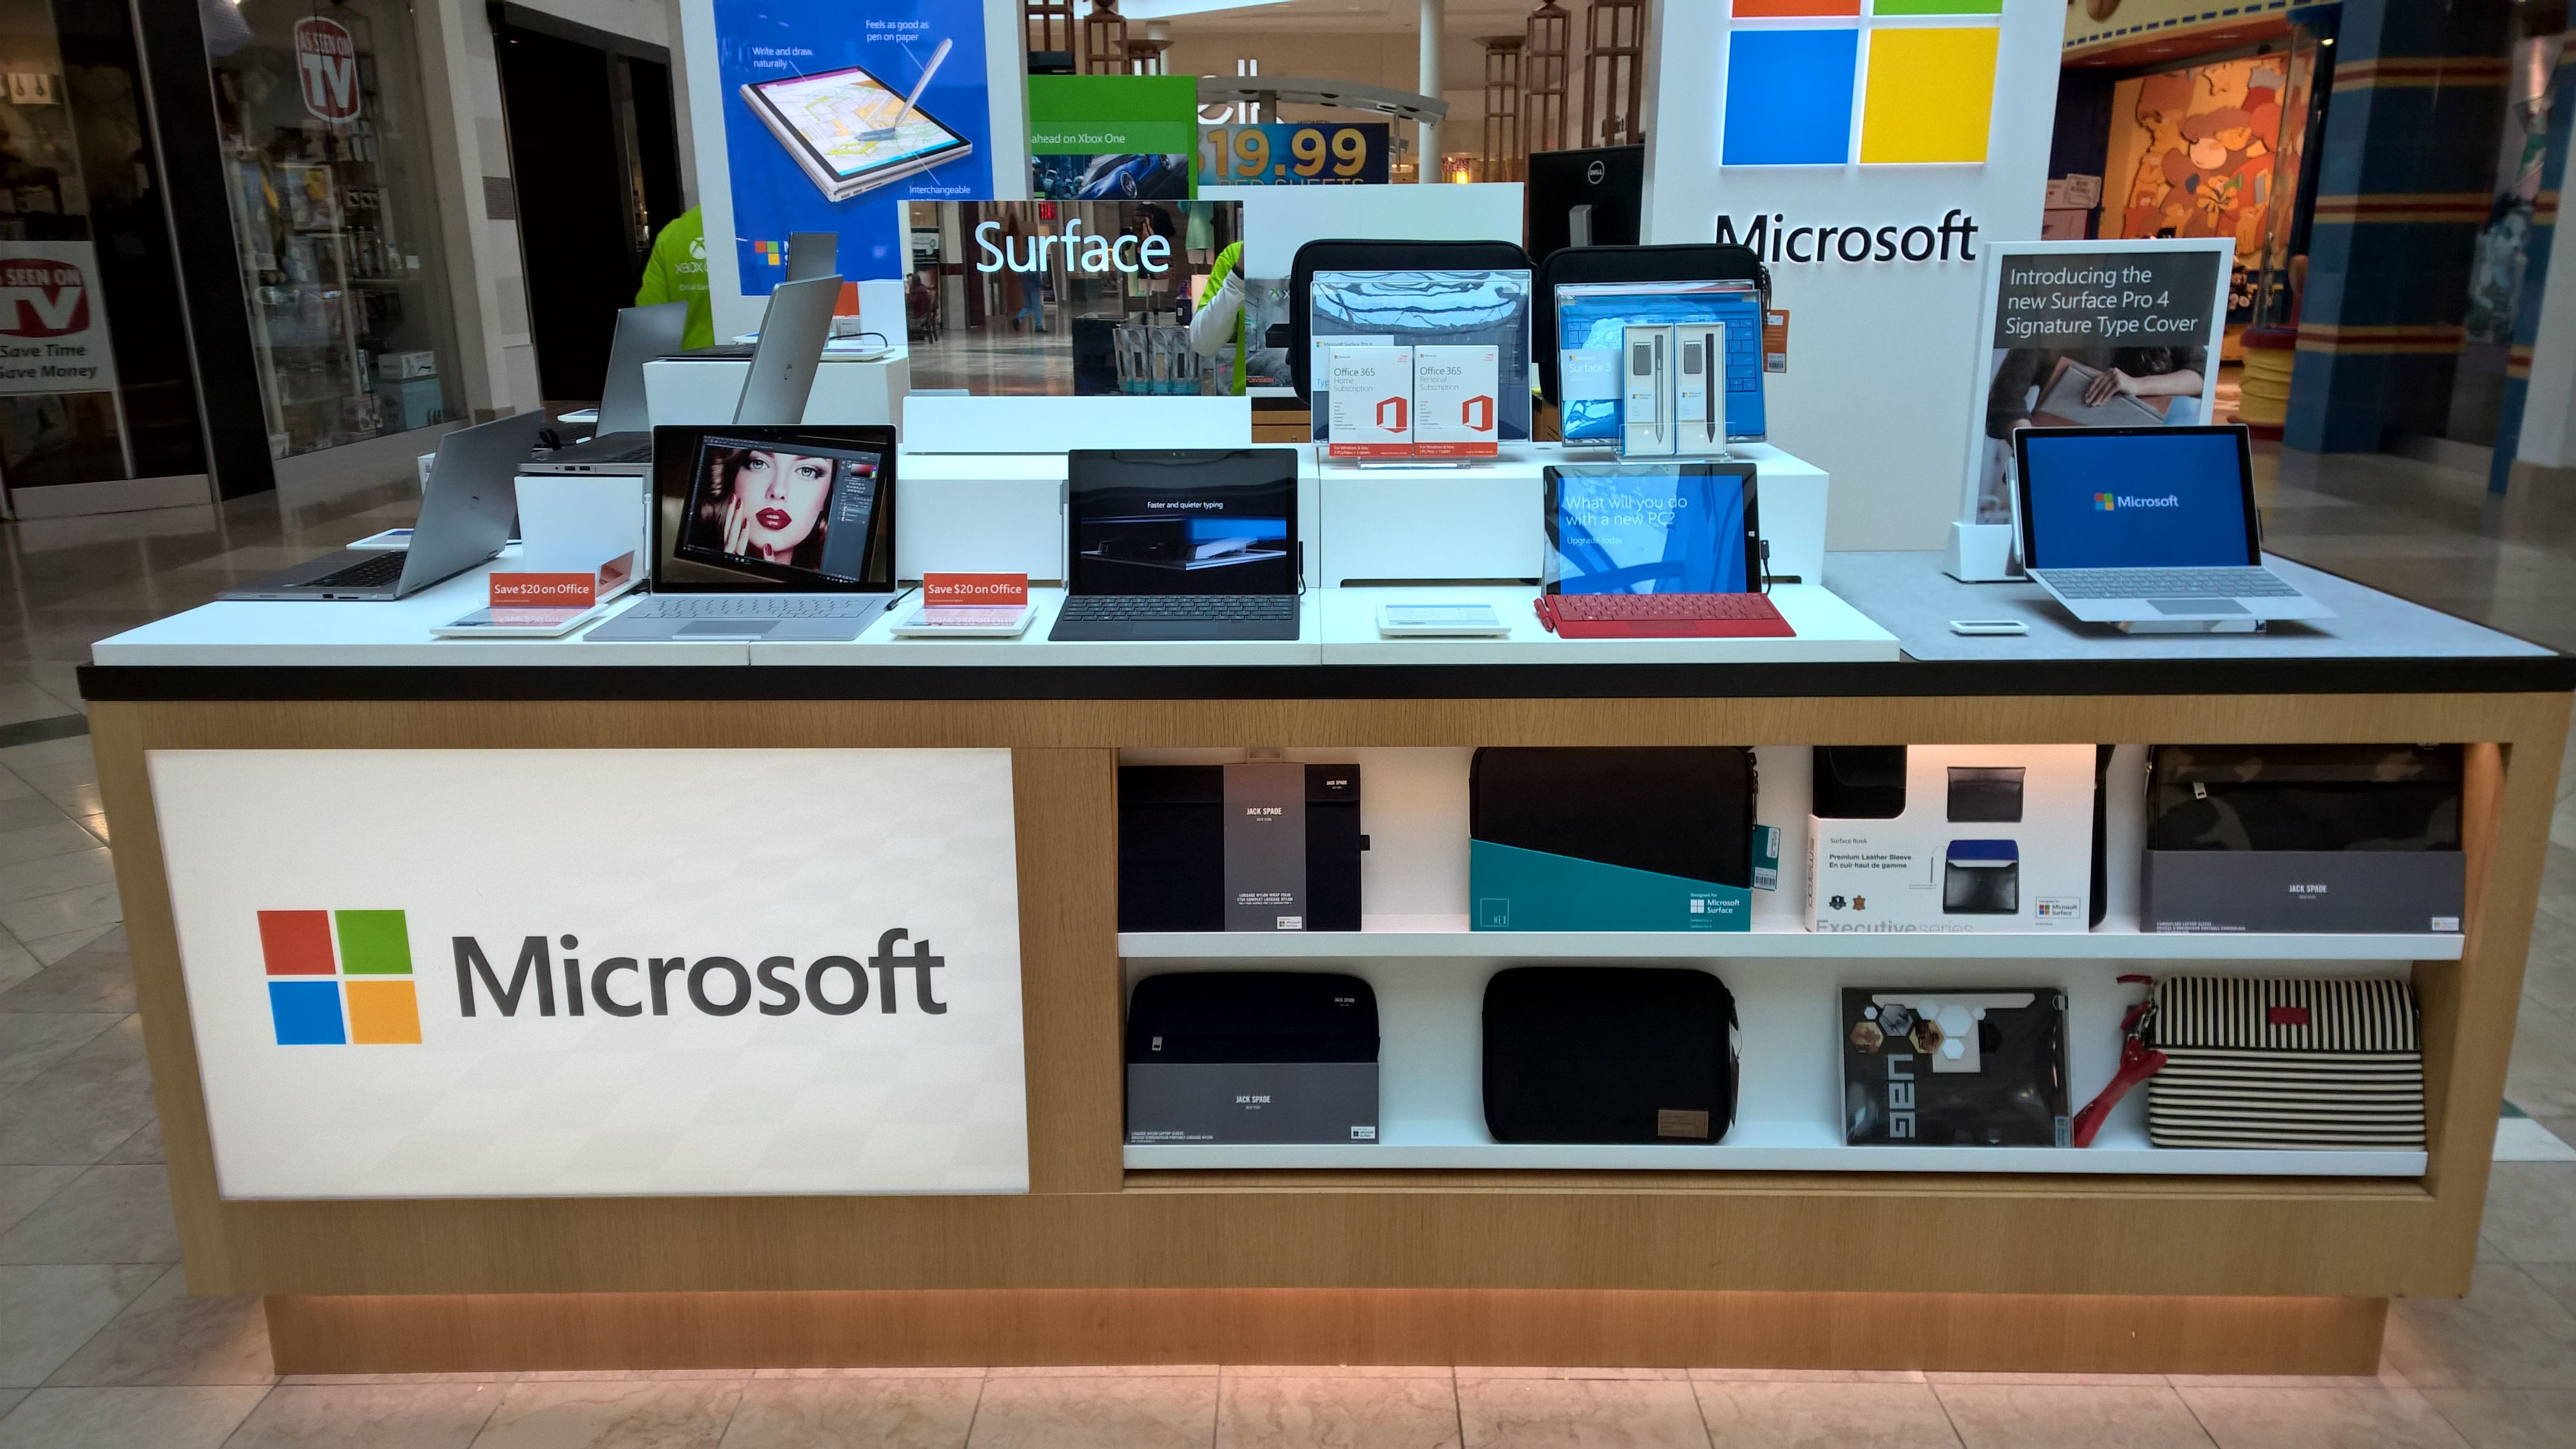 Microsoft store recruiting event knoxville microsoft knoxville tn